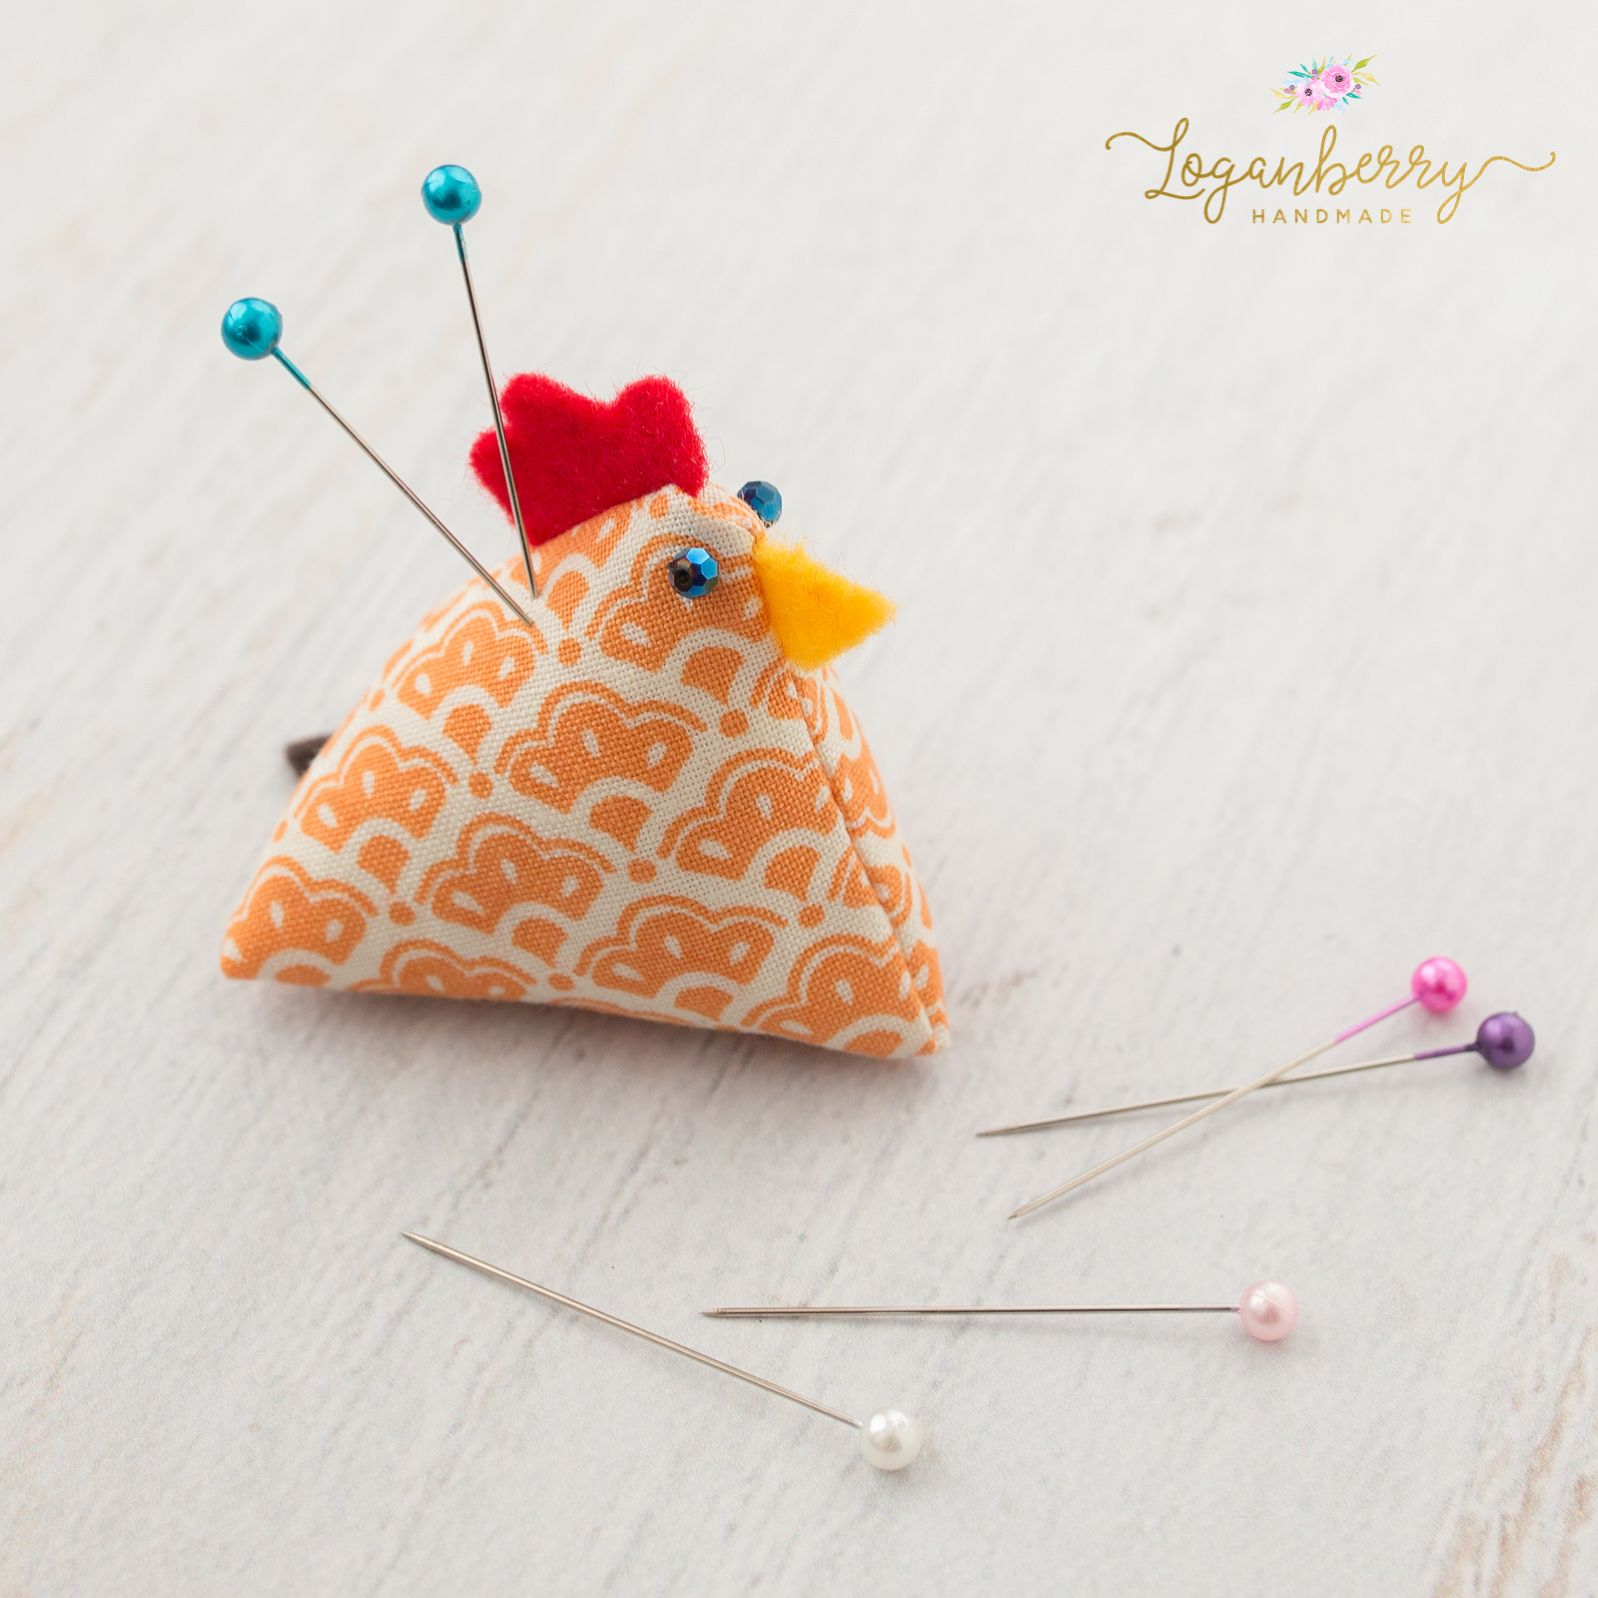 Chicken pin cushions tutorial free sewing pattern and tutorial tiny chicken pin cushions tutorial free sewing pattern and tutorial how to sew a chicken pin cushion diy pin cushions chicken bean bags jeuxipadfo Image collections